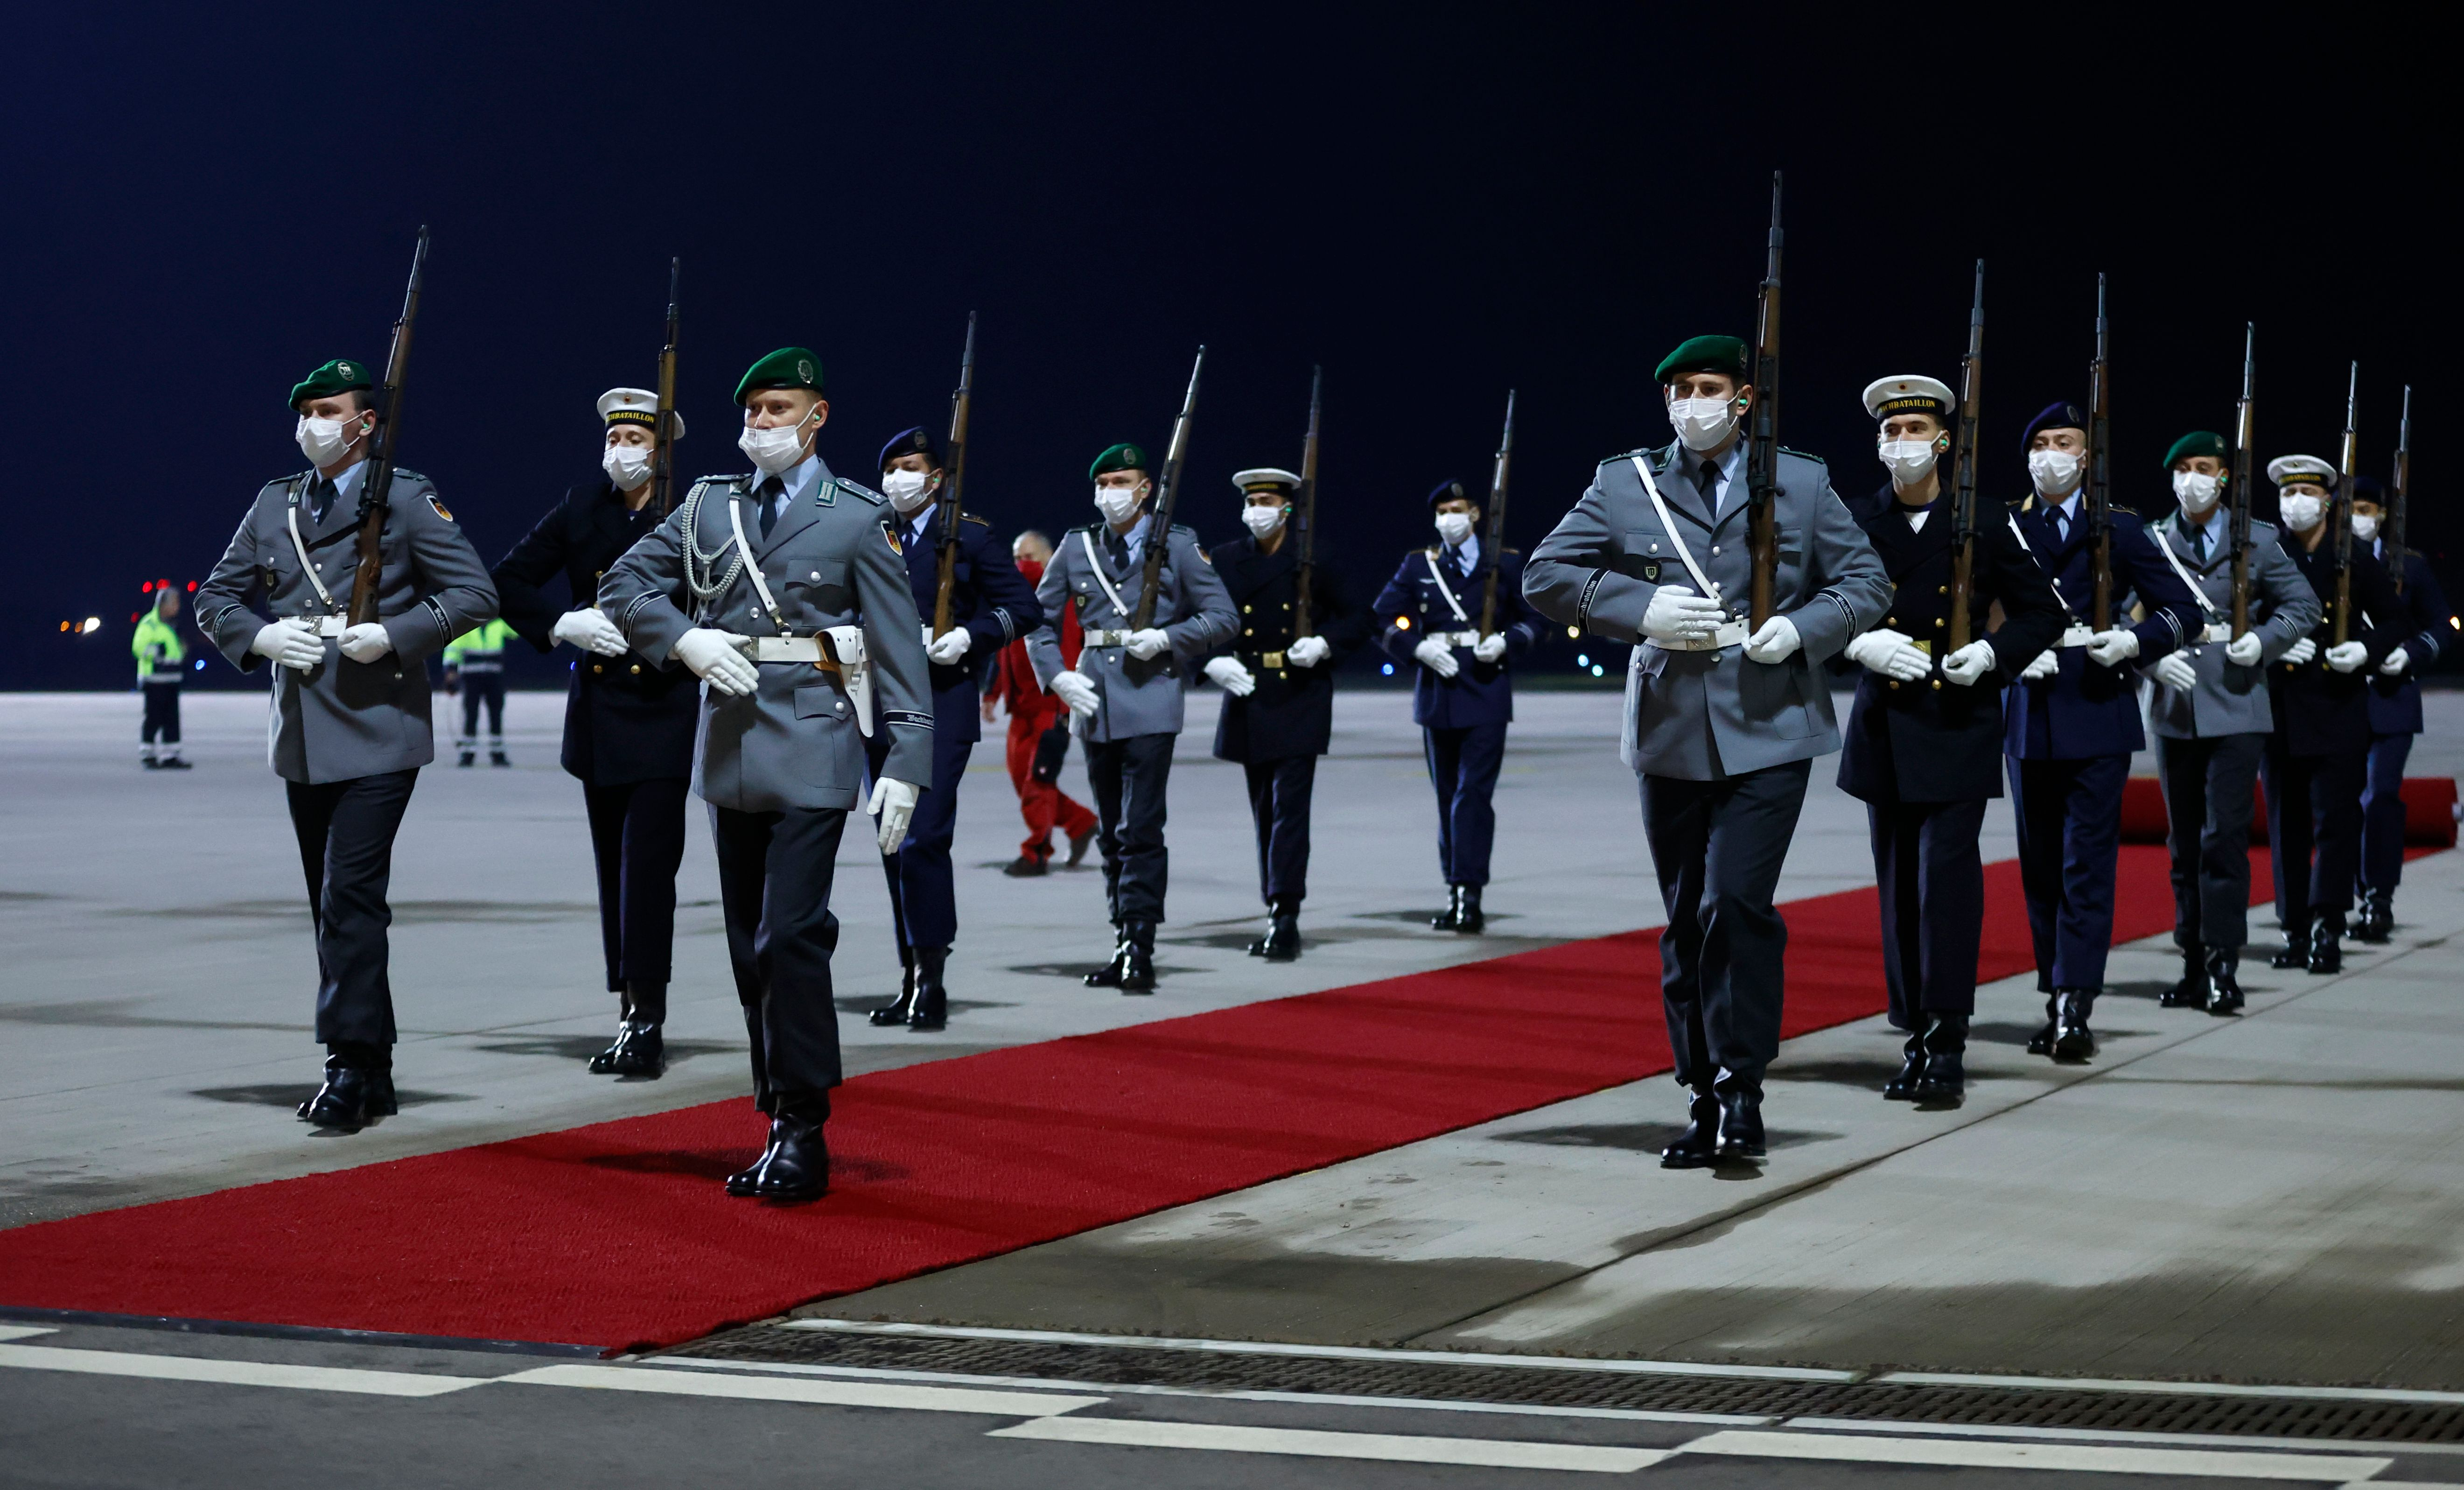 Soldiers of an honor guard prepare to welcome Britain's Prince Charles, Prince of Wales and Camilla, Duchess of Cornwall, expected to arrive at Berlin Brandenburg Airport (BER) in Schoenefeld on November 14, 2020. - The royals will visit the German capital for a wreath laying ceremony on national Memorial Day at Neue Wache and a visit to parliament on November 15, 2020. (Photo by Odd ANDERSEN / various sources / AFP) (Photo by ODD ANDERSEN/POOL/AFP via Getty Images)